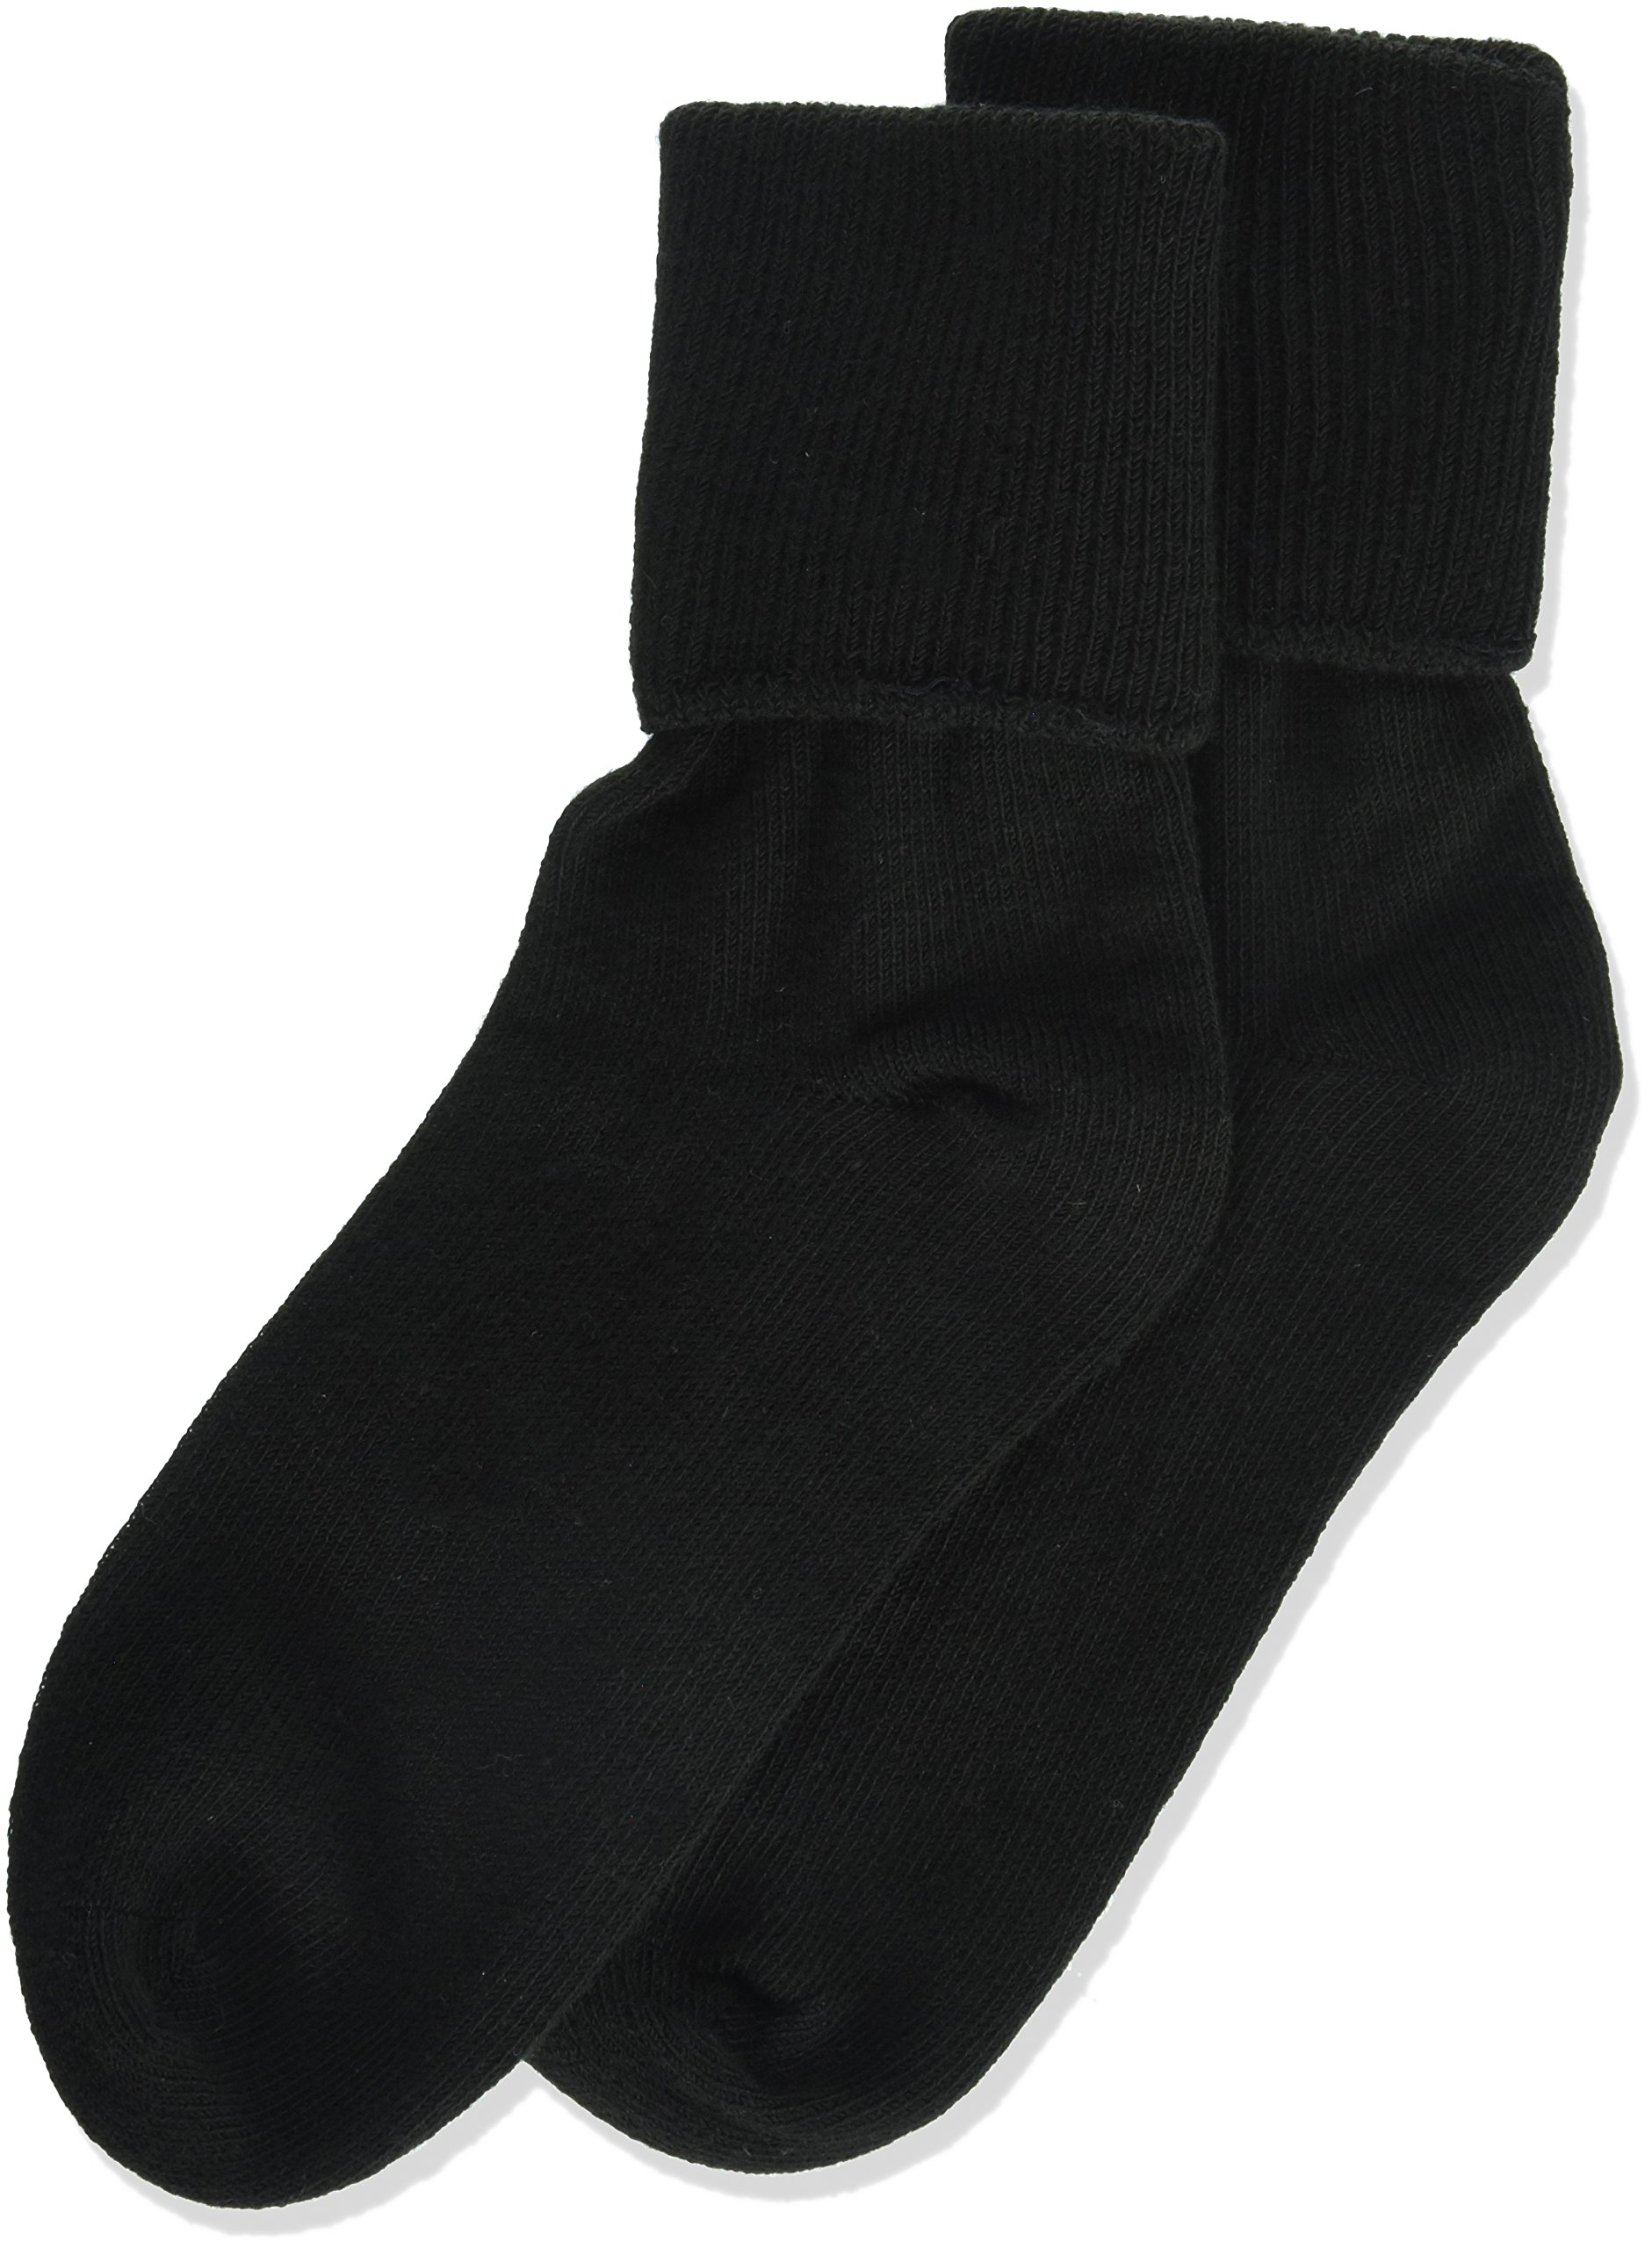 Jefferies Socks Little Girls' Seamless Turn Cuff Socks (Pack of 6), Black, Small